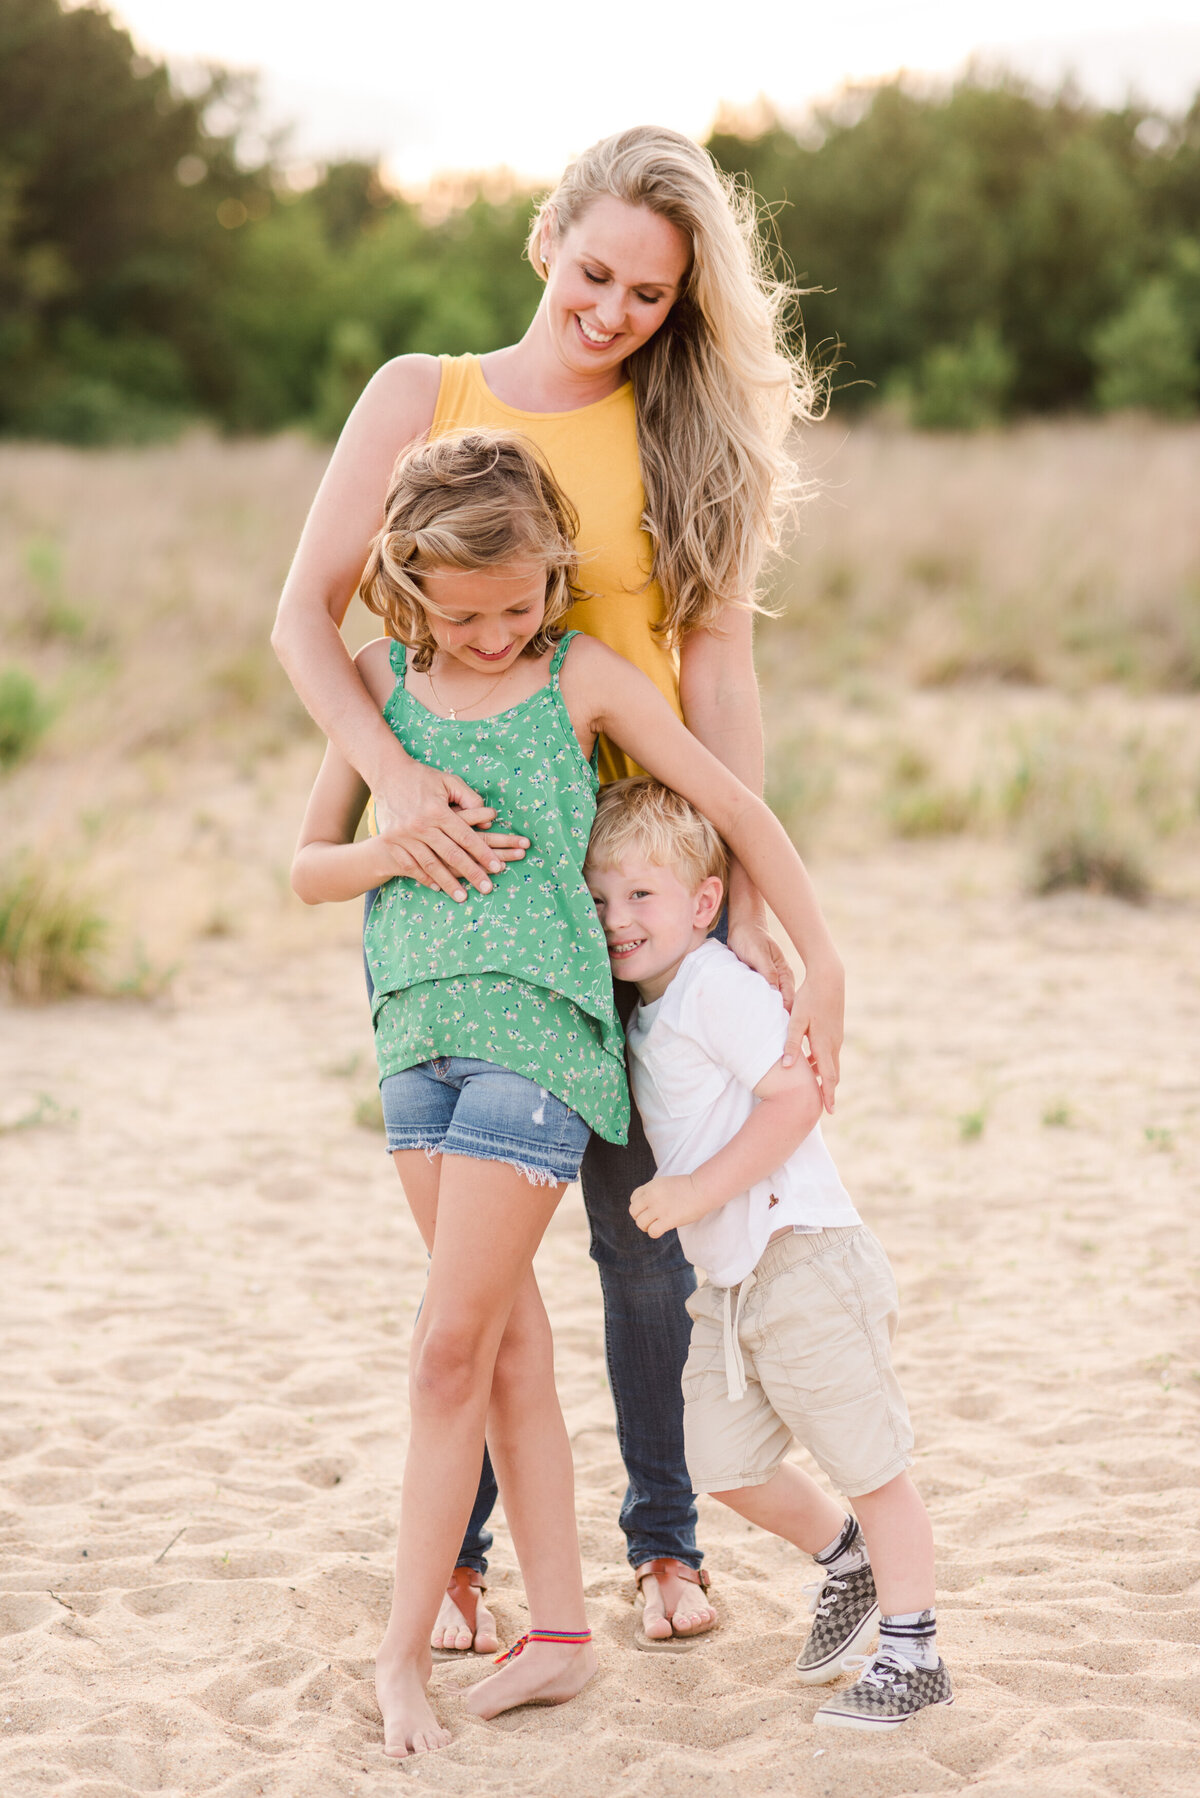 family-photographer-virginia-beach-tonya-volk-photography-36